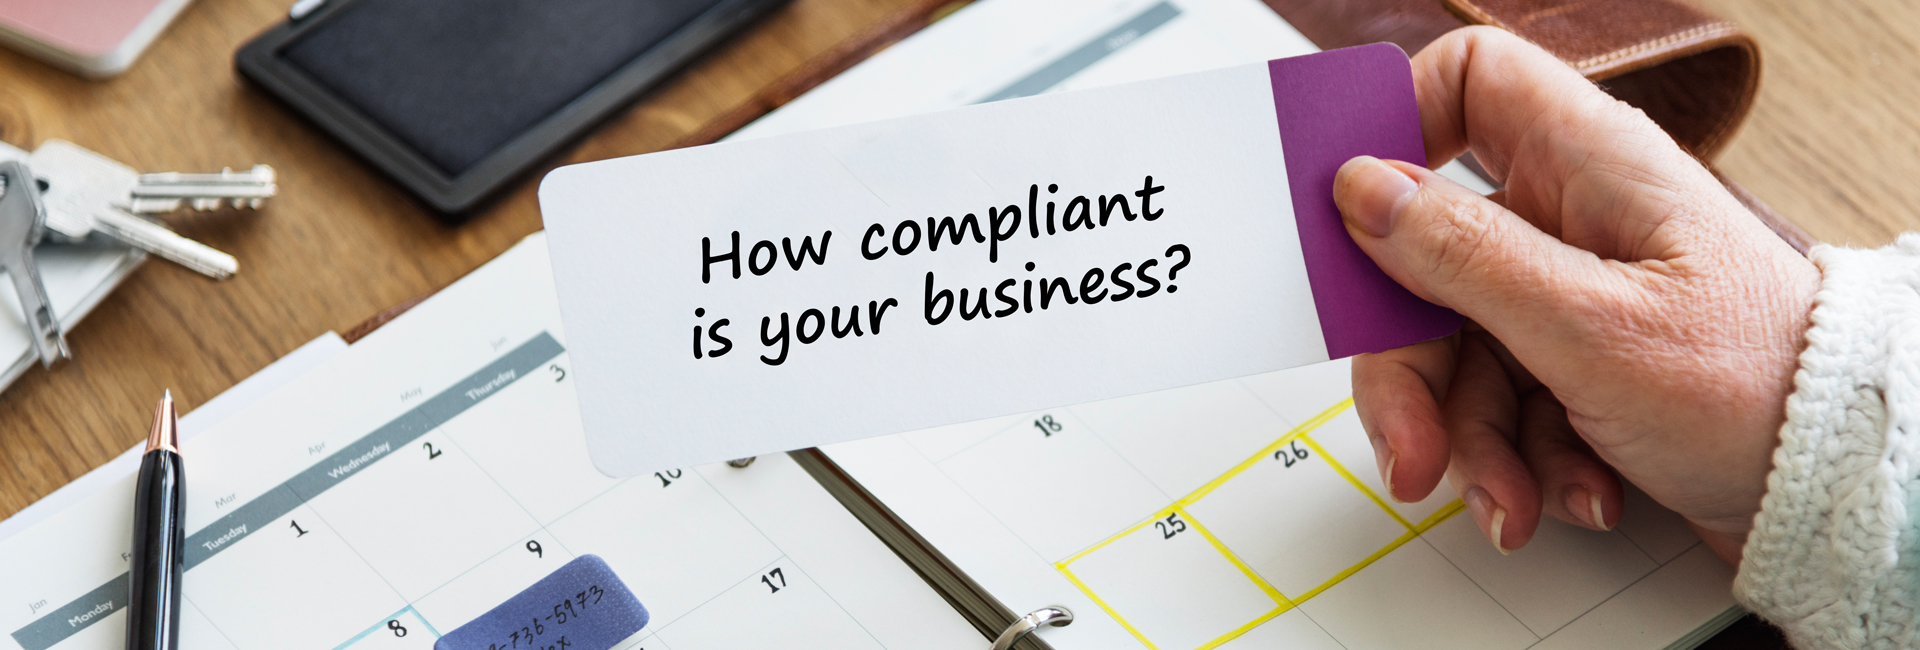 Is your business compliant image